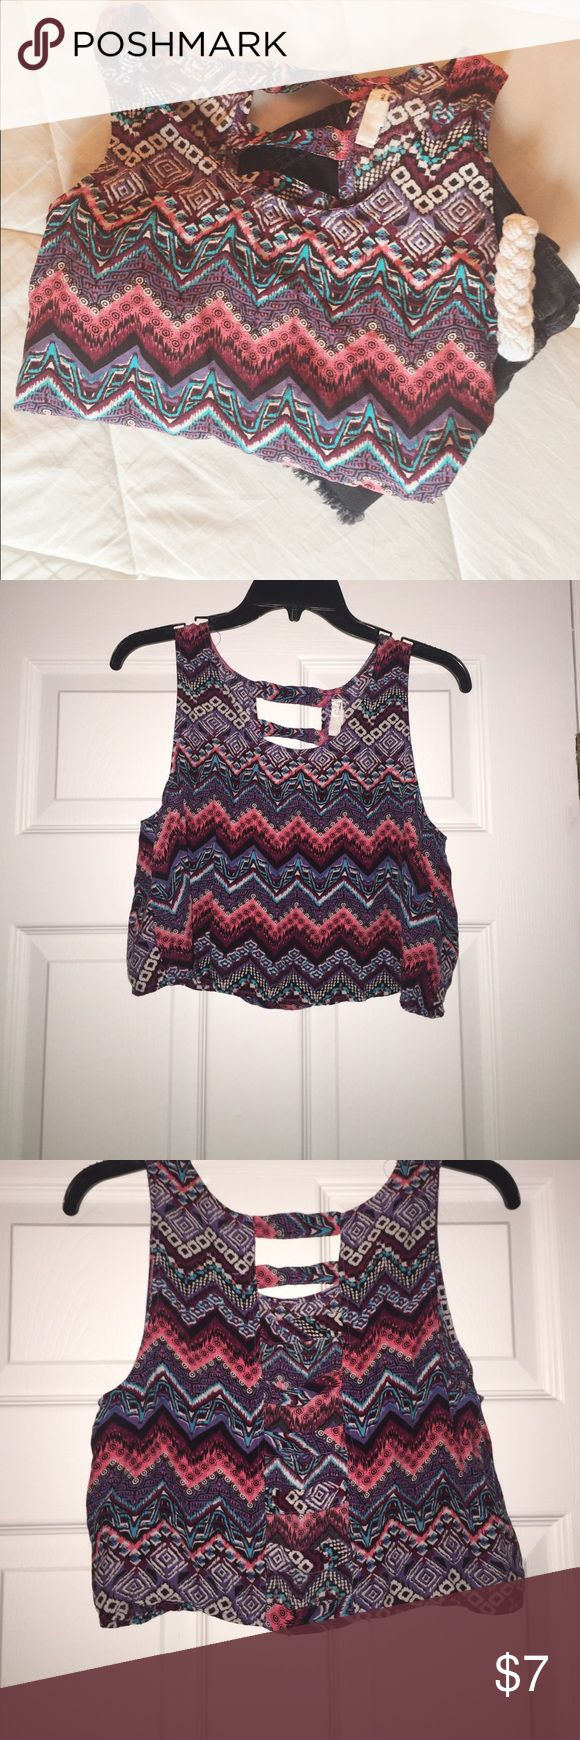 Colorful Aztec Print Flowy Crop Top by Garage This crop top is in EUC! Worn only ONCE! Purchased from Garage. Colorful, flowy, aztec crop top with a cutout back. Size is medium. Perfect for summer time! Soo pretty Garage Tops Crop Tops